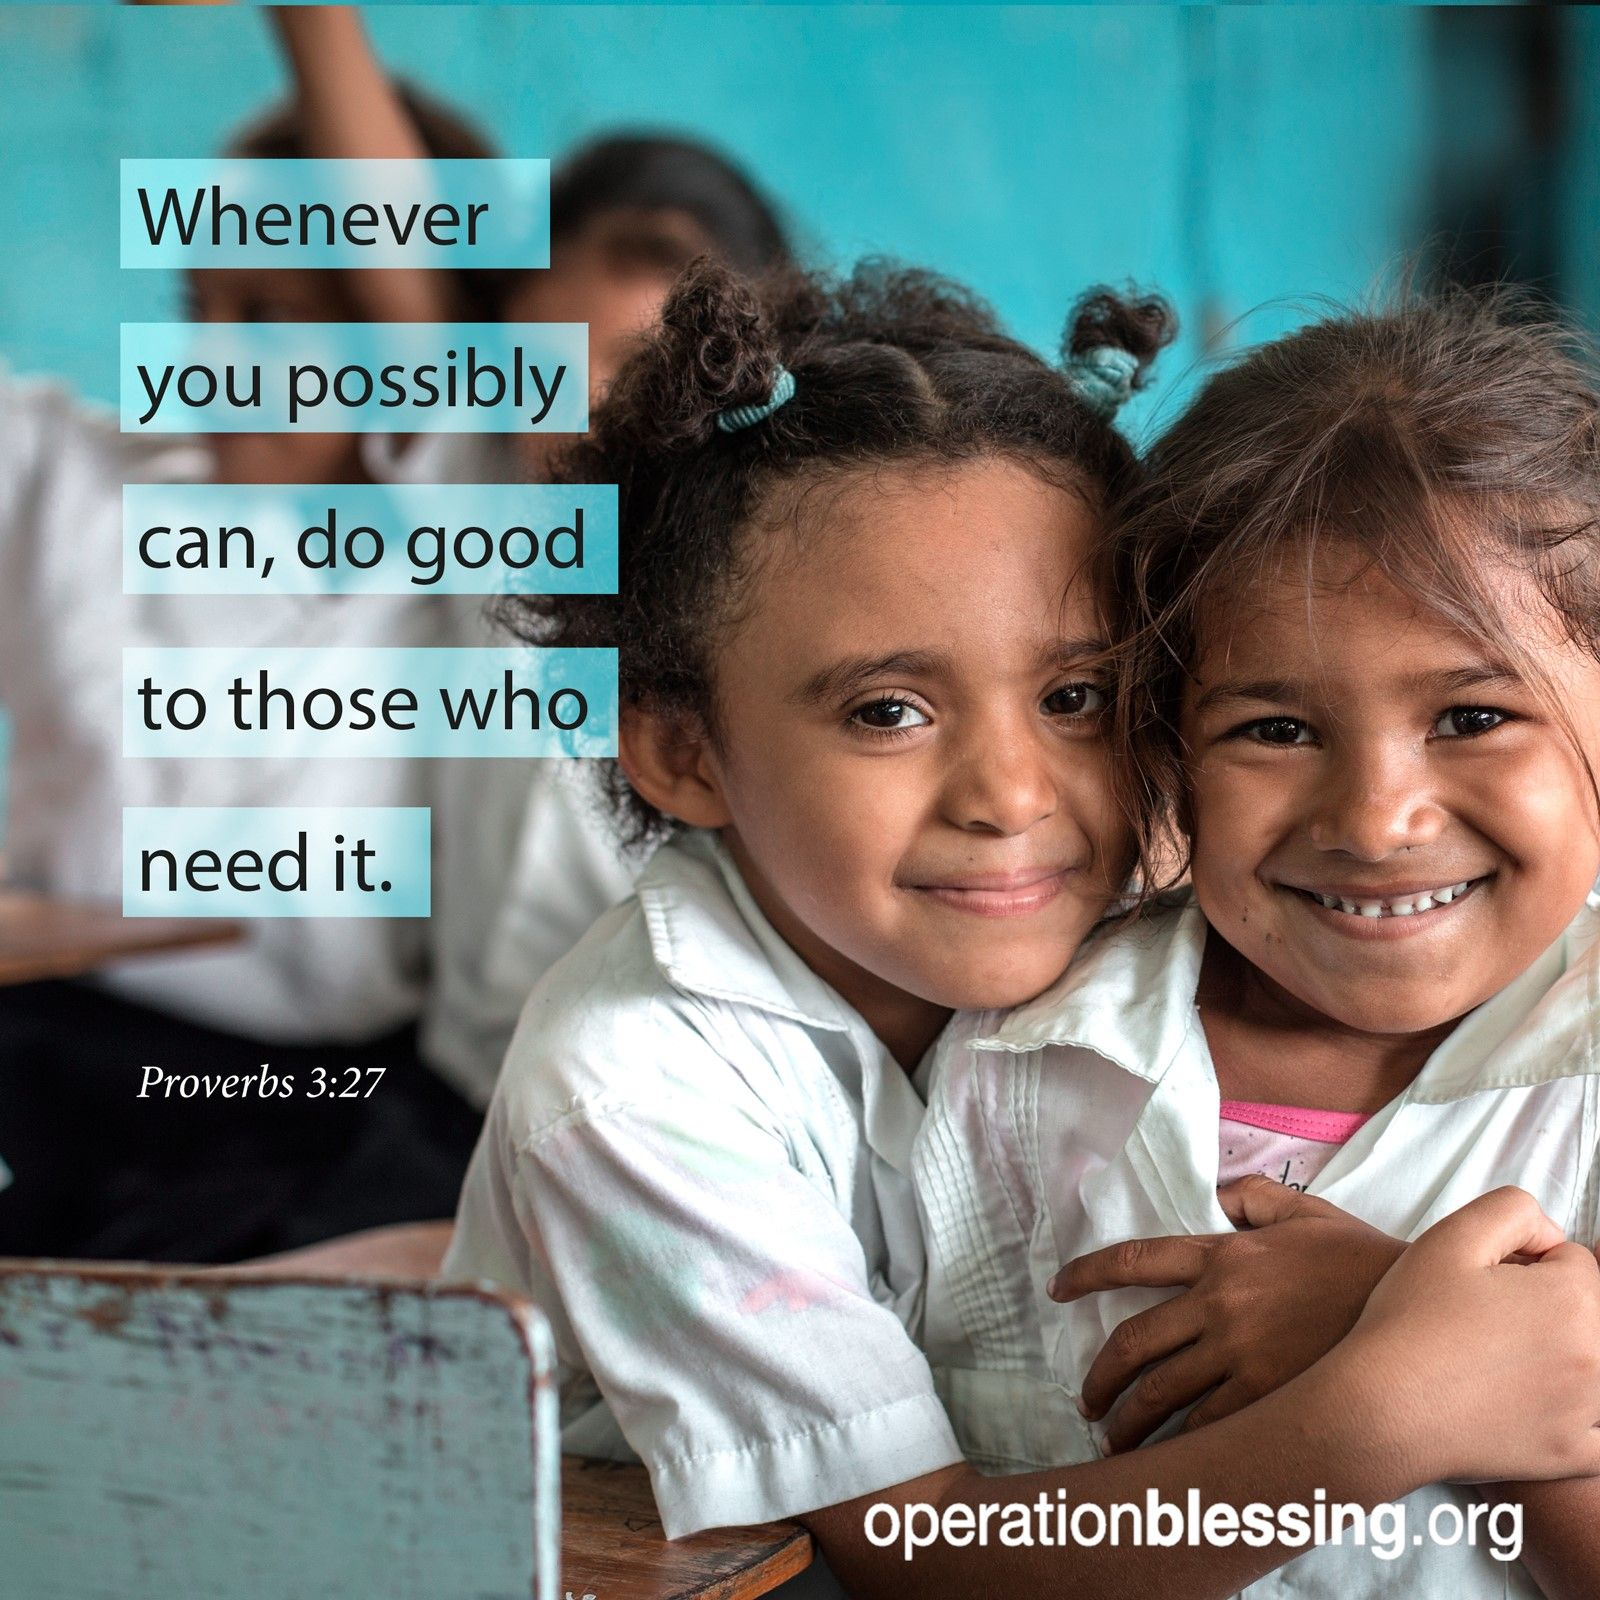 """Operation Blessing is dedicated to caring for those in need around the world through humanitarian aid. """"Whenever you possibly can, do good to those who need it."""" Proverbs 3:27."""